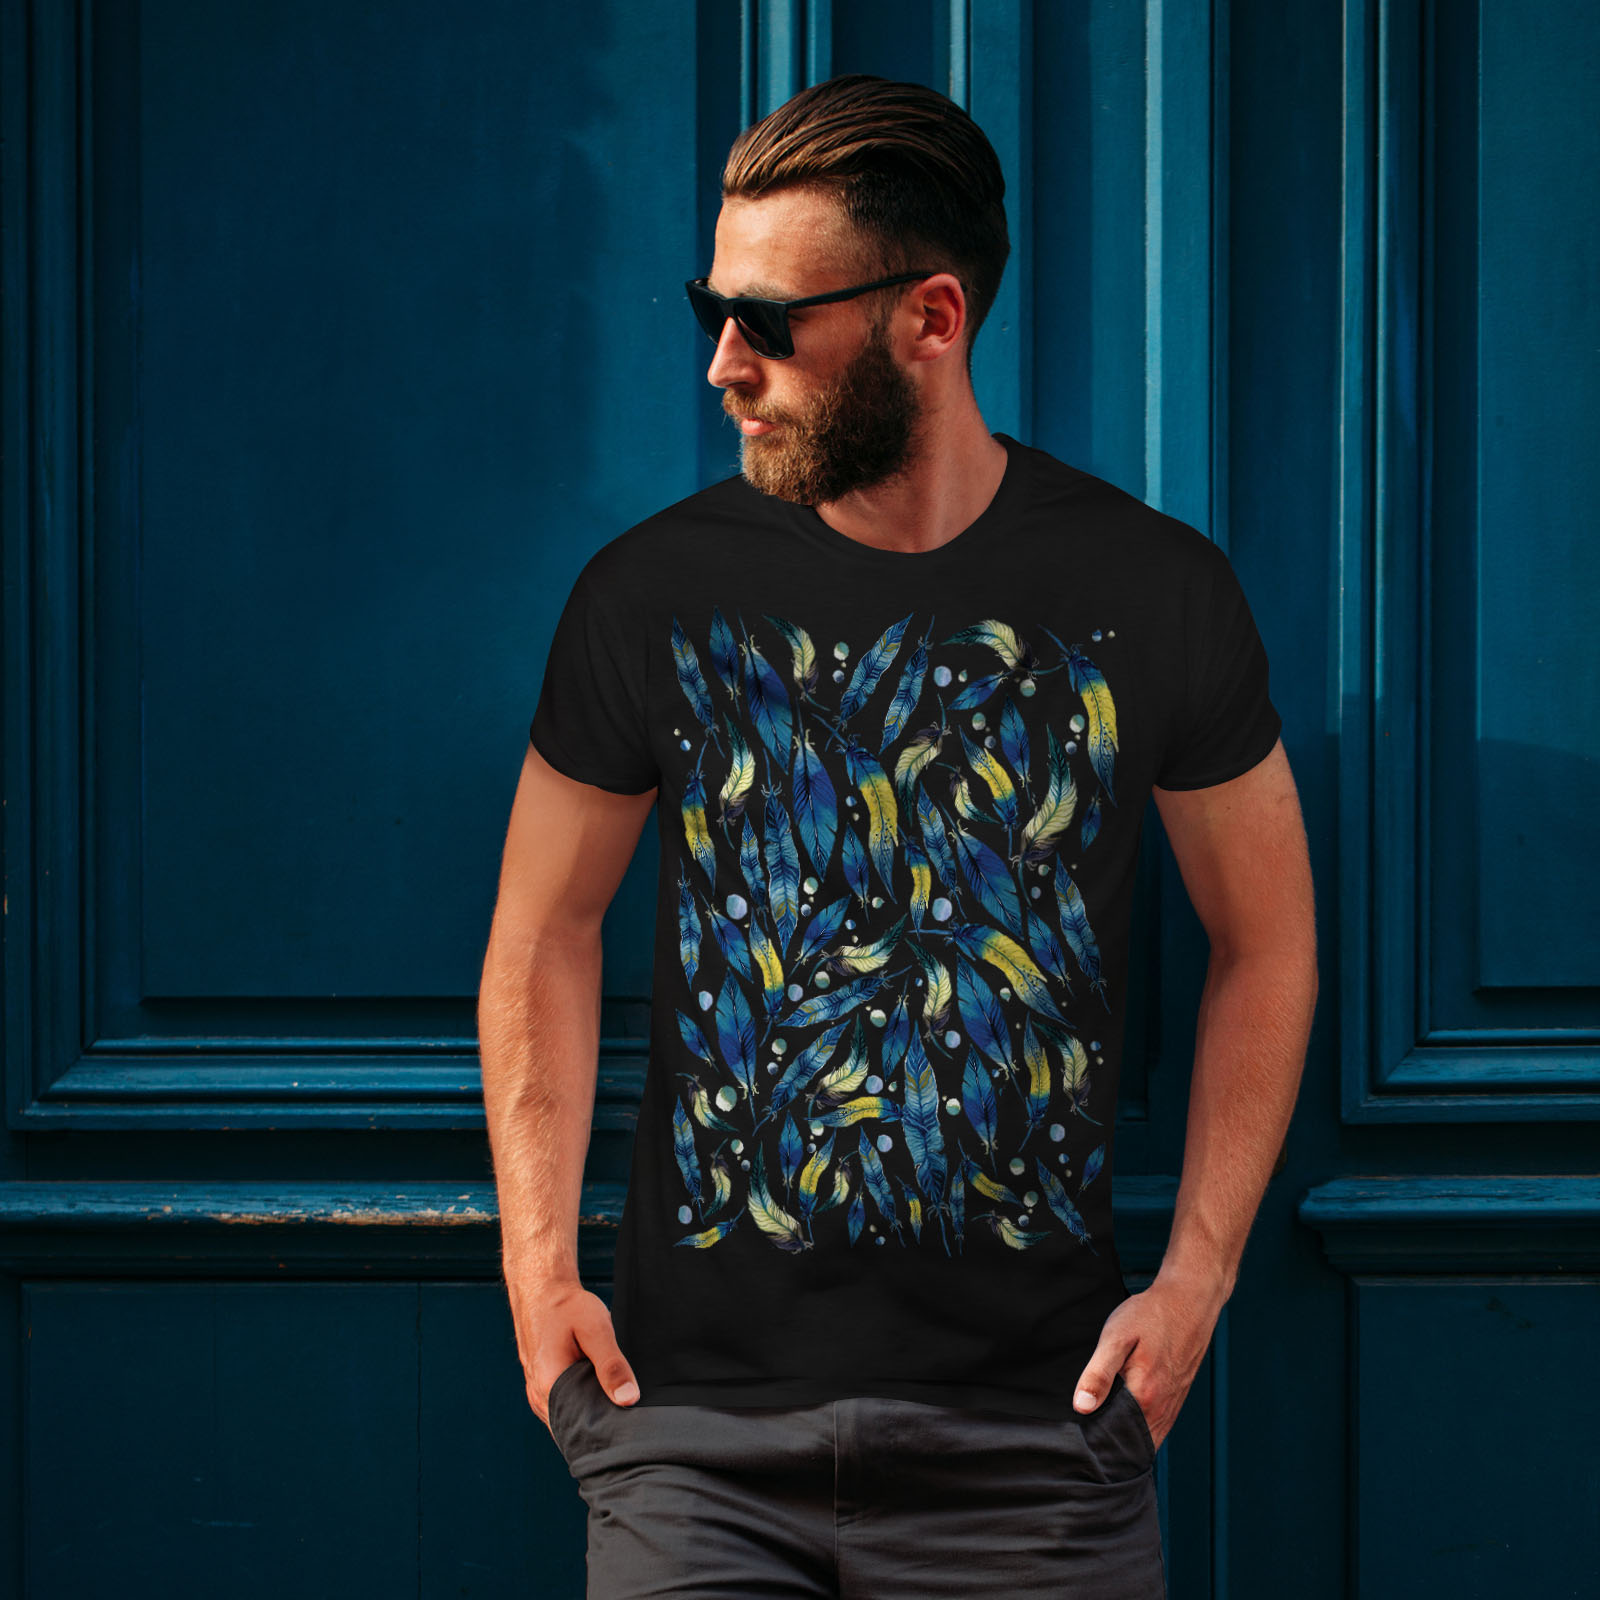 Wellcoda-fashion-Plumes-T-shirt-homme-Abstract-Design-graphique-imprime-Tee miniature 4